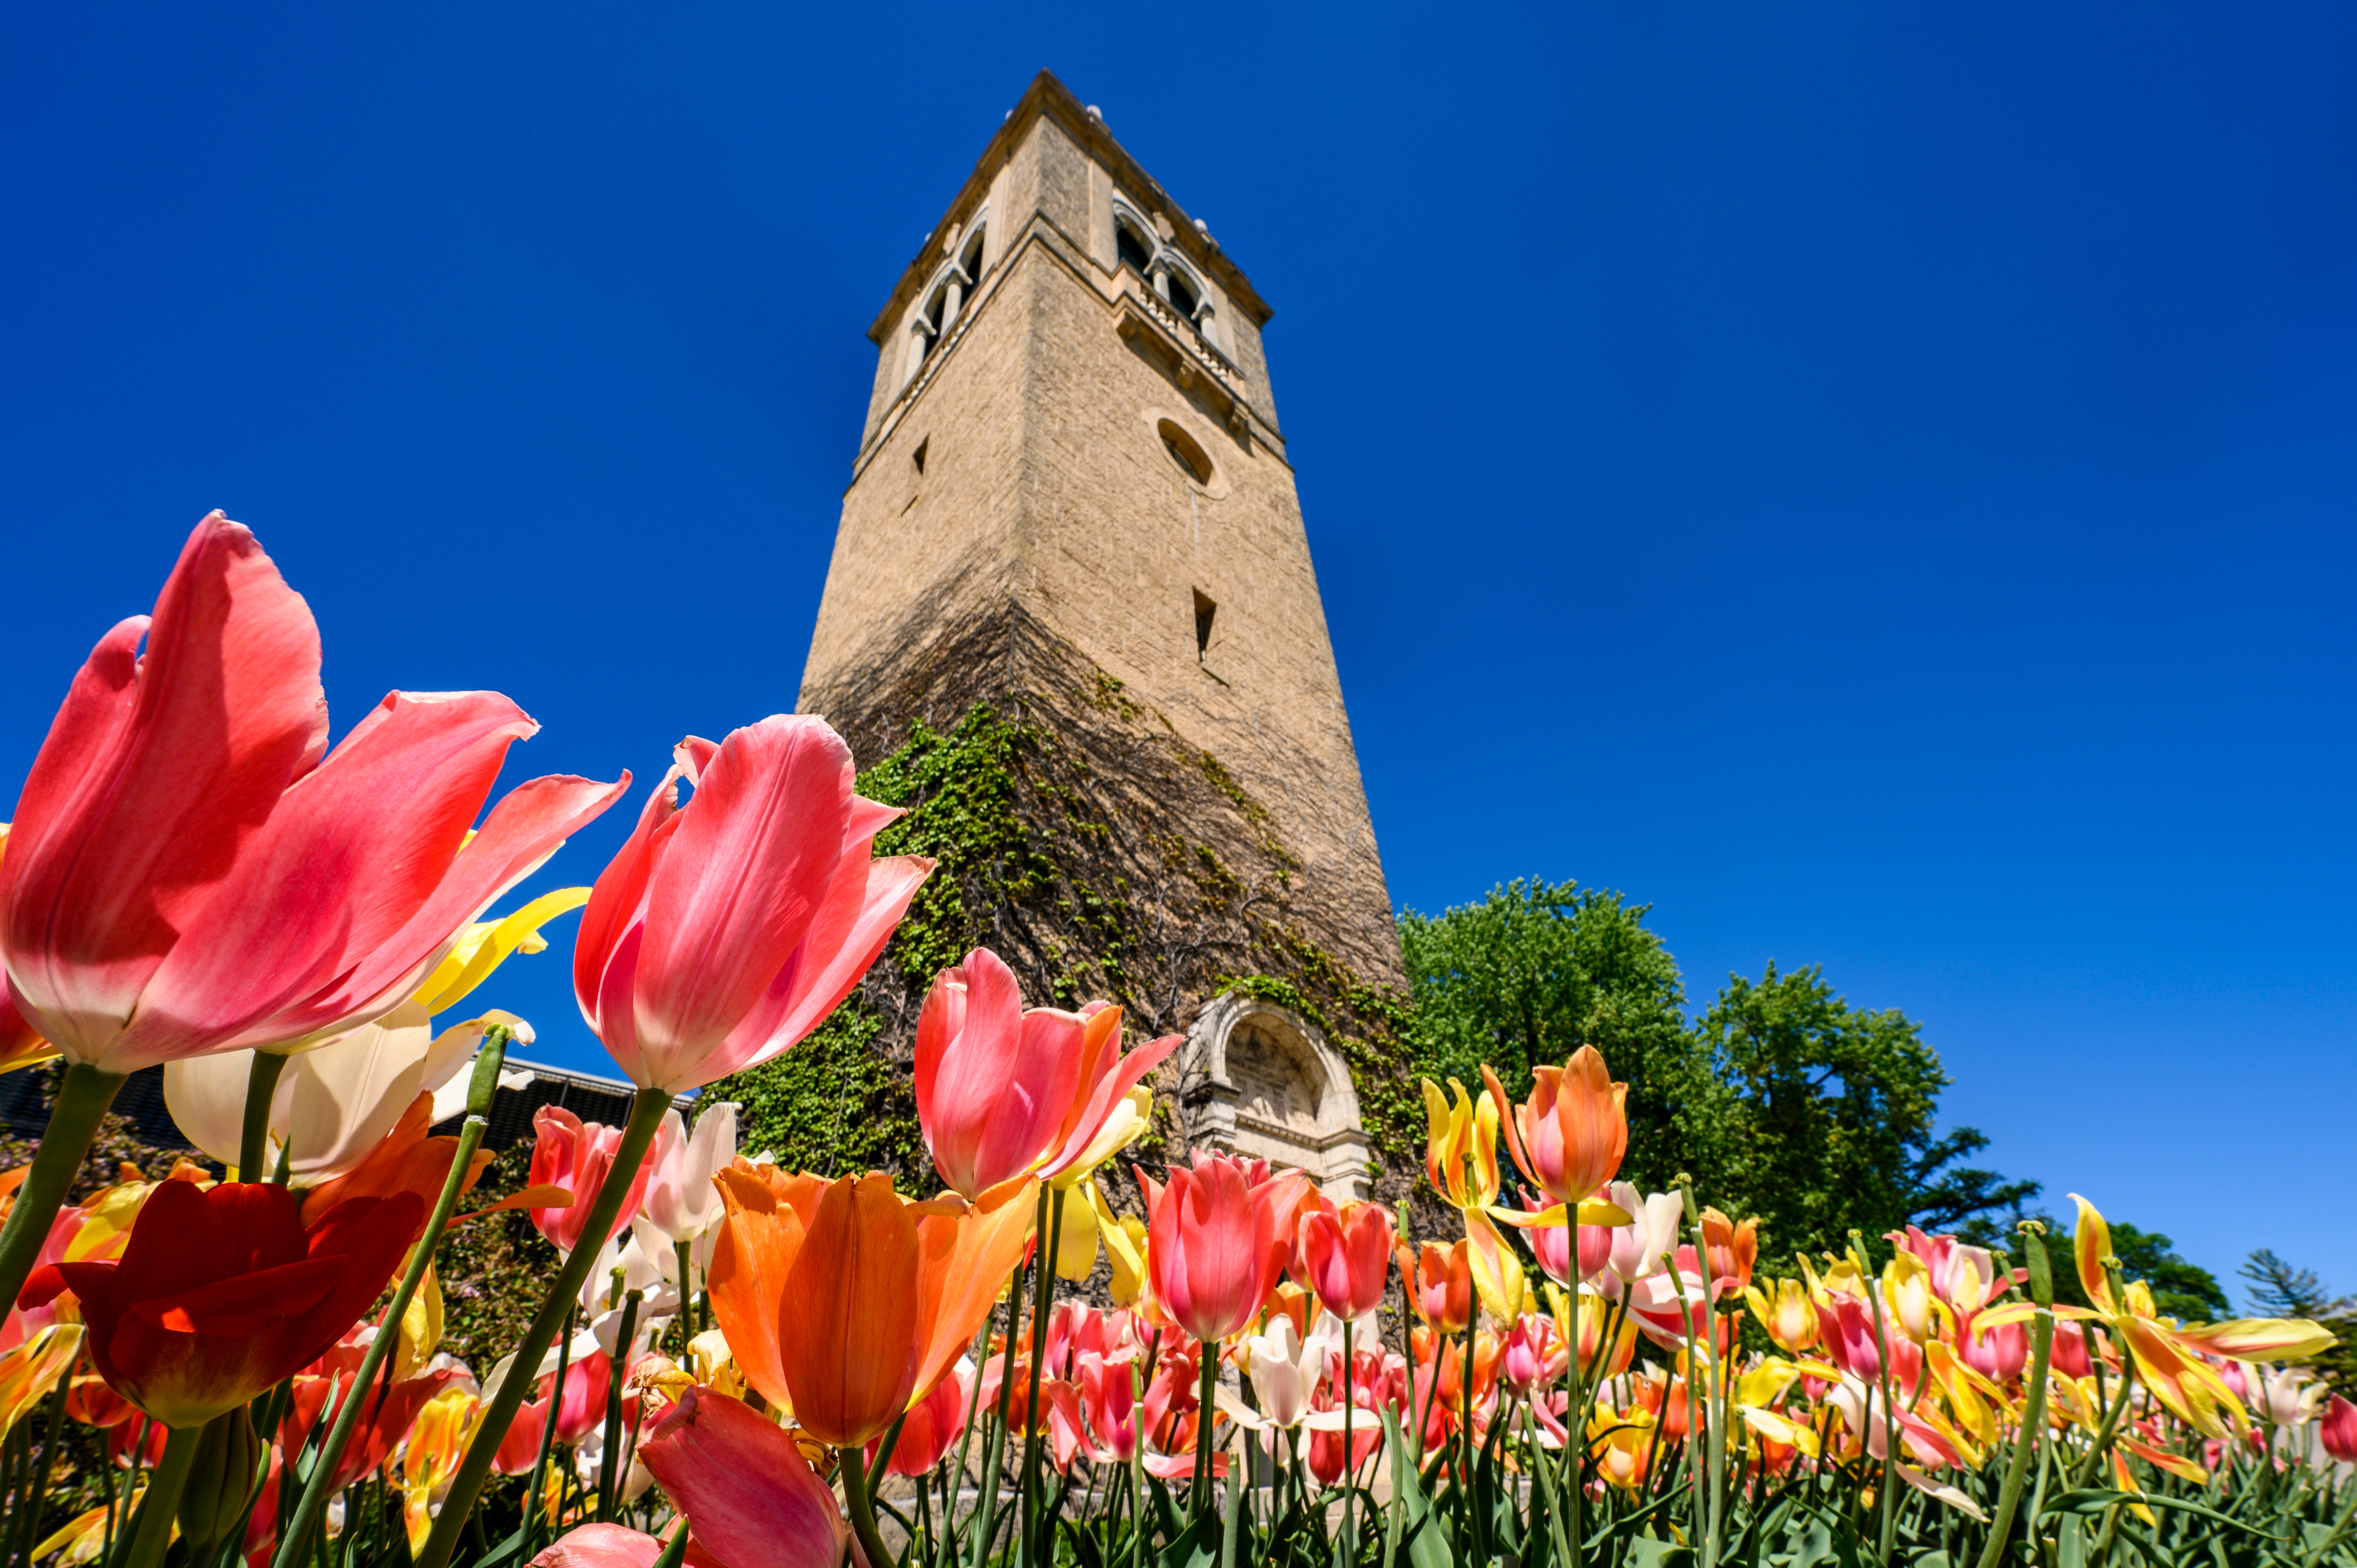 The Carillon Tower in front of the Social Sciences building with tulips in the foreground